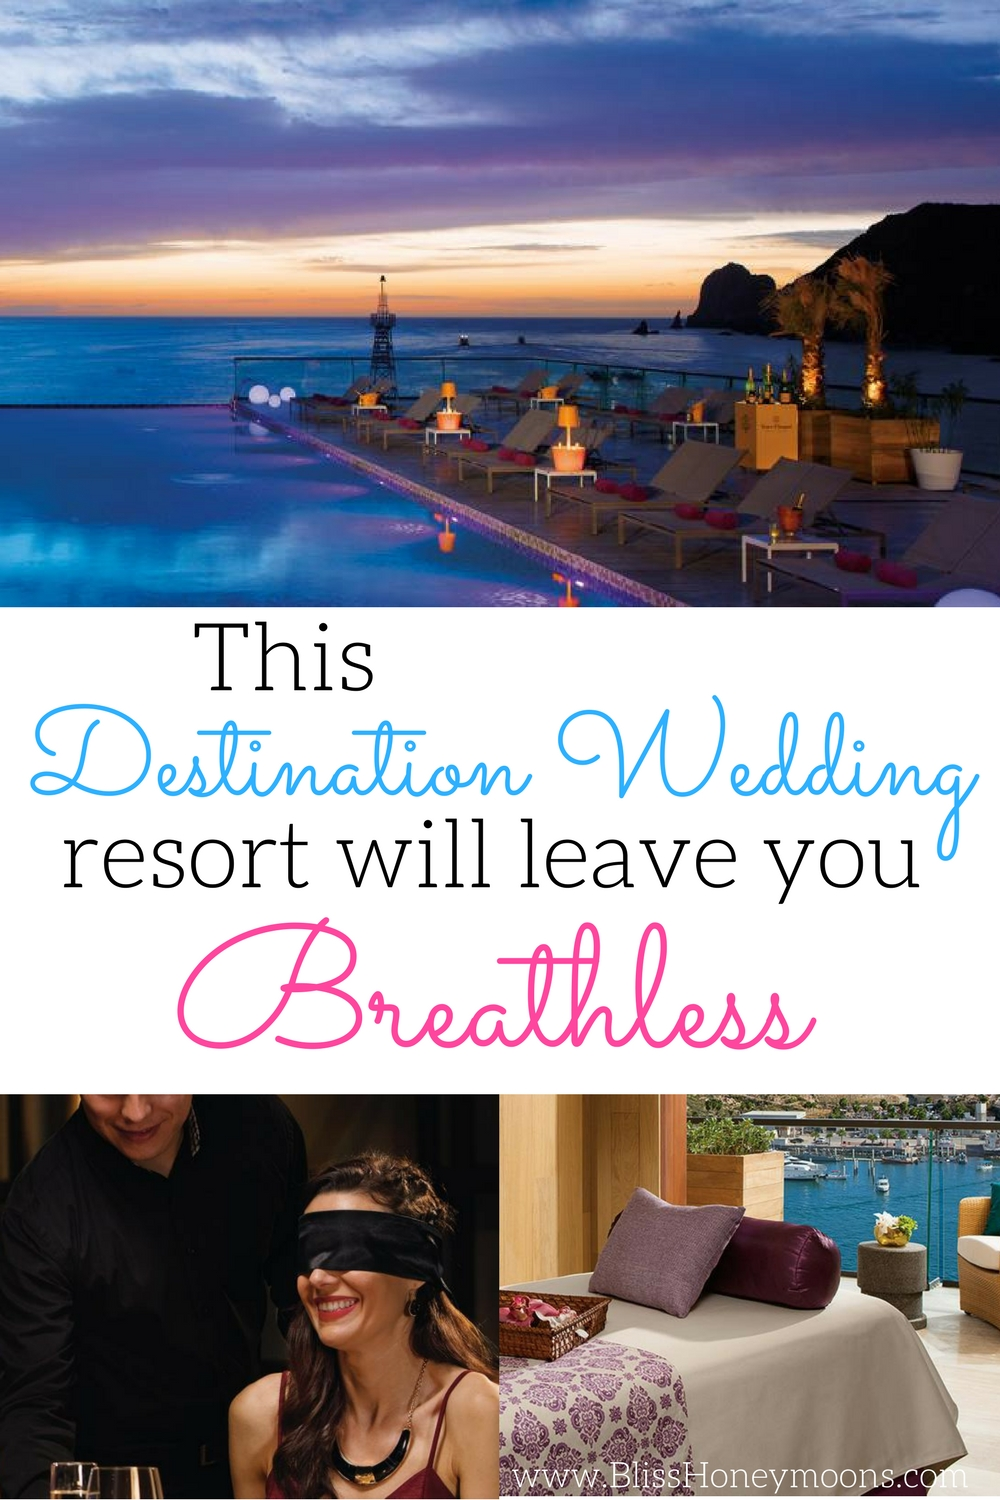 Wedding review Breathless Cabo San Lucas, dinner in the dark Cabo San Lucas, dinner in the dark Breathless, honeymoon review Cabo San Lucas, best Cabo Sal Lucas honeymoon, best destination wedding travel agent, Bliss Honeymoons Cabo San Lucas